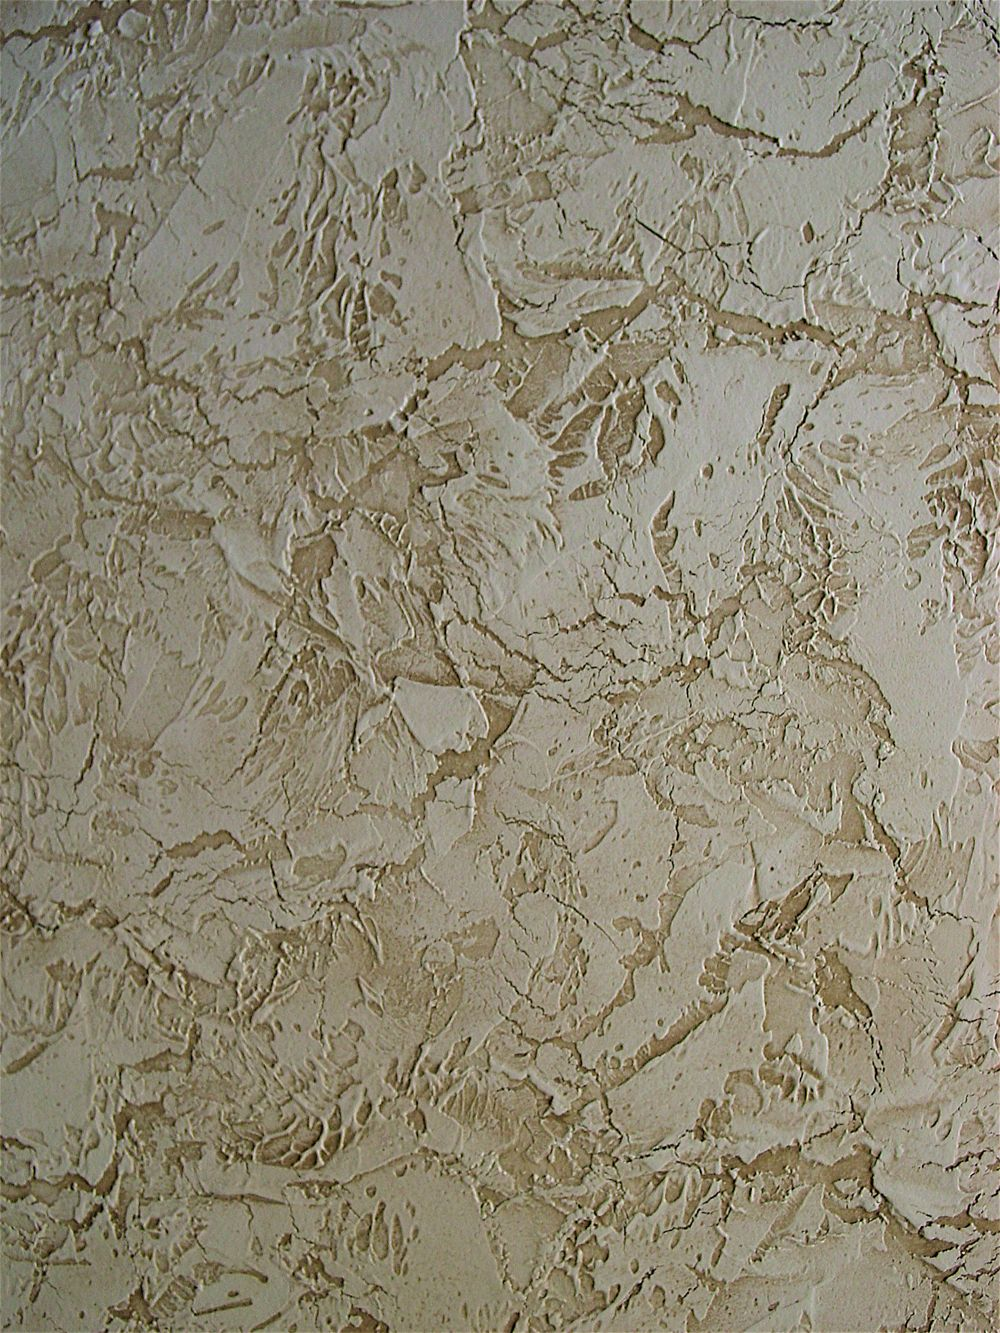 Wall textures techniques wall texture techniques http - Different exterior wall finishes ...